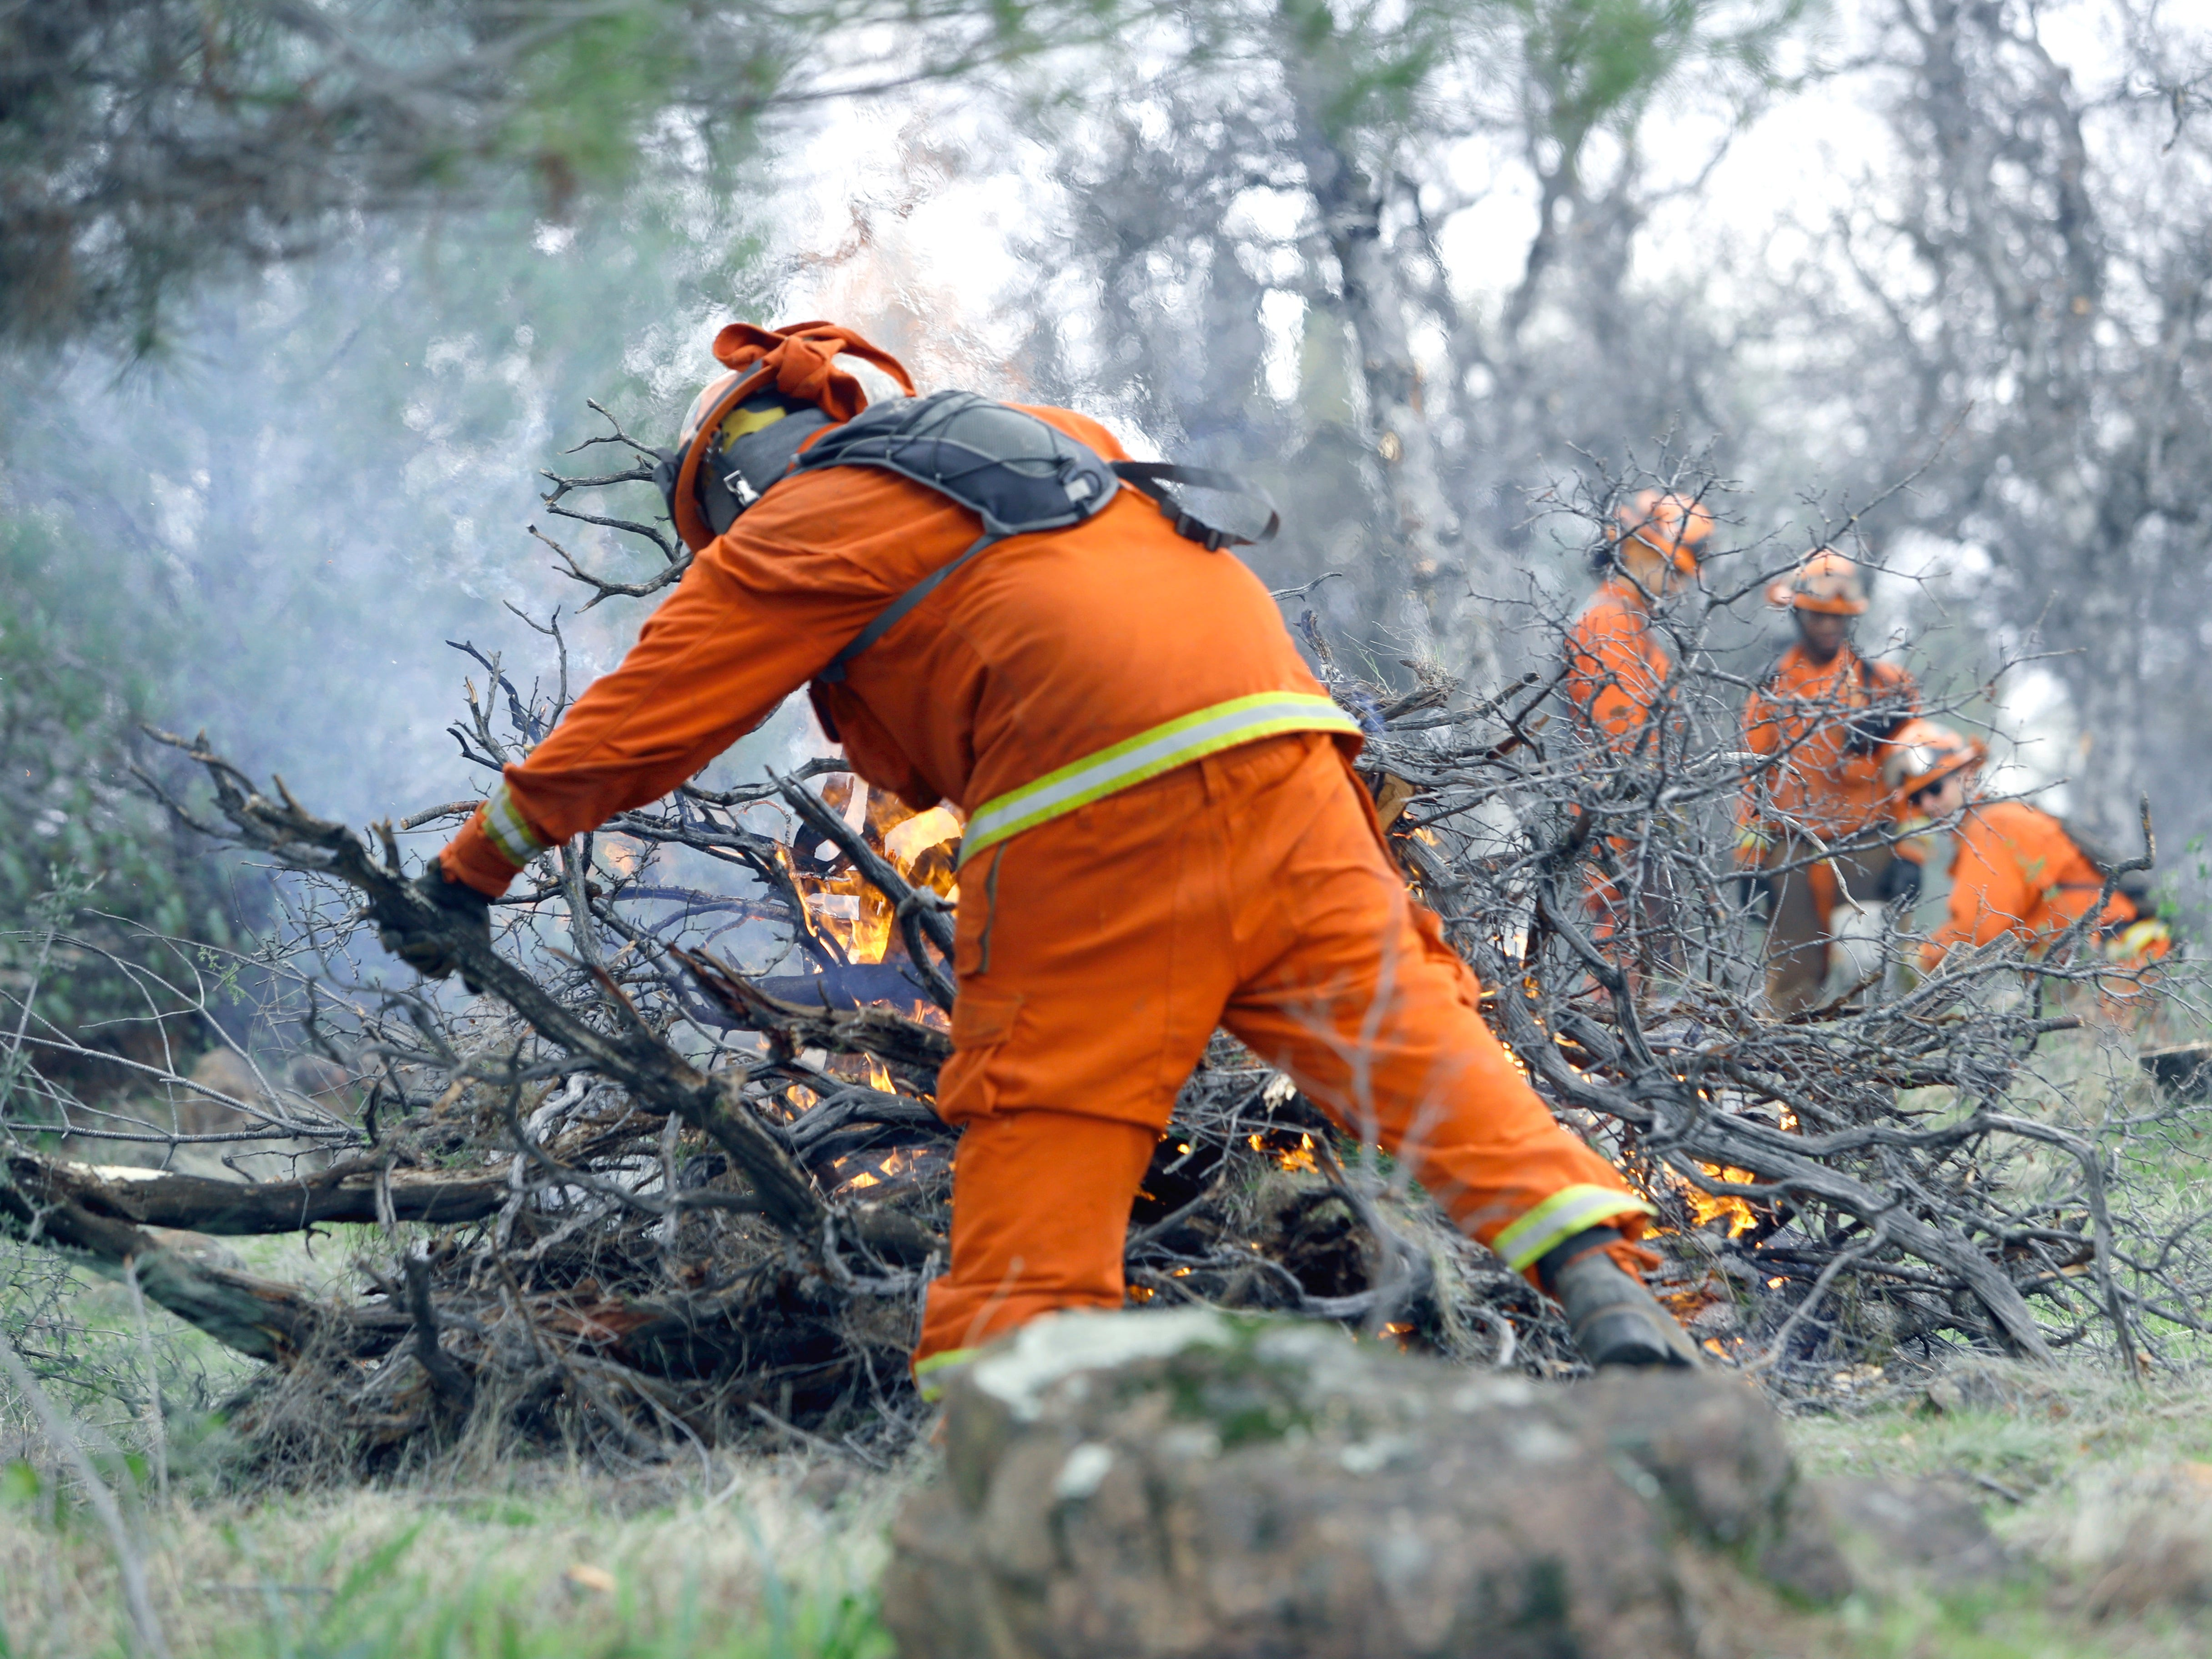 A crew from the Sugar Pine Conservation Camp burns brush and tree limbs that were cleared from city-owned open space between El Capitan Drive and Regent Avenue in west Redding on Feb. 6, 2019.